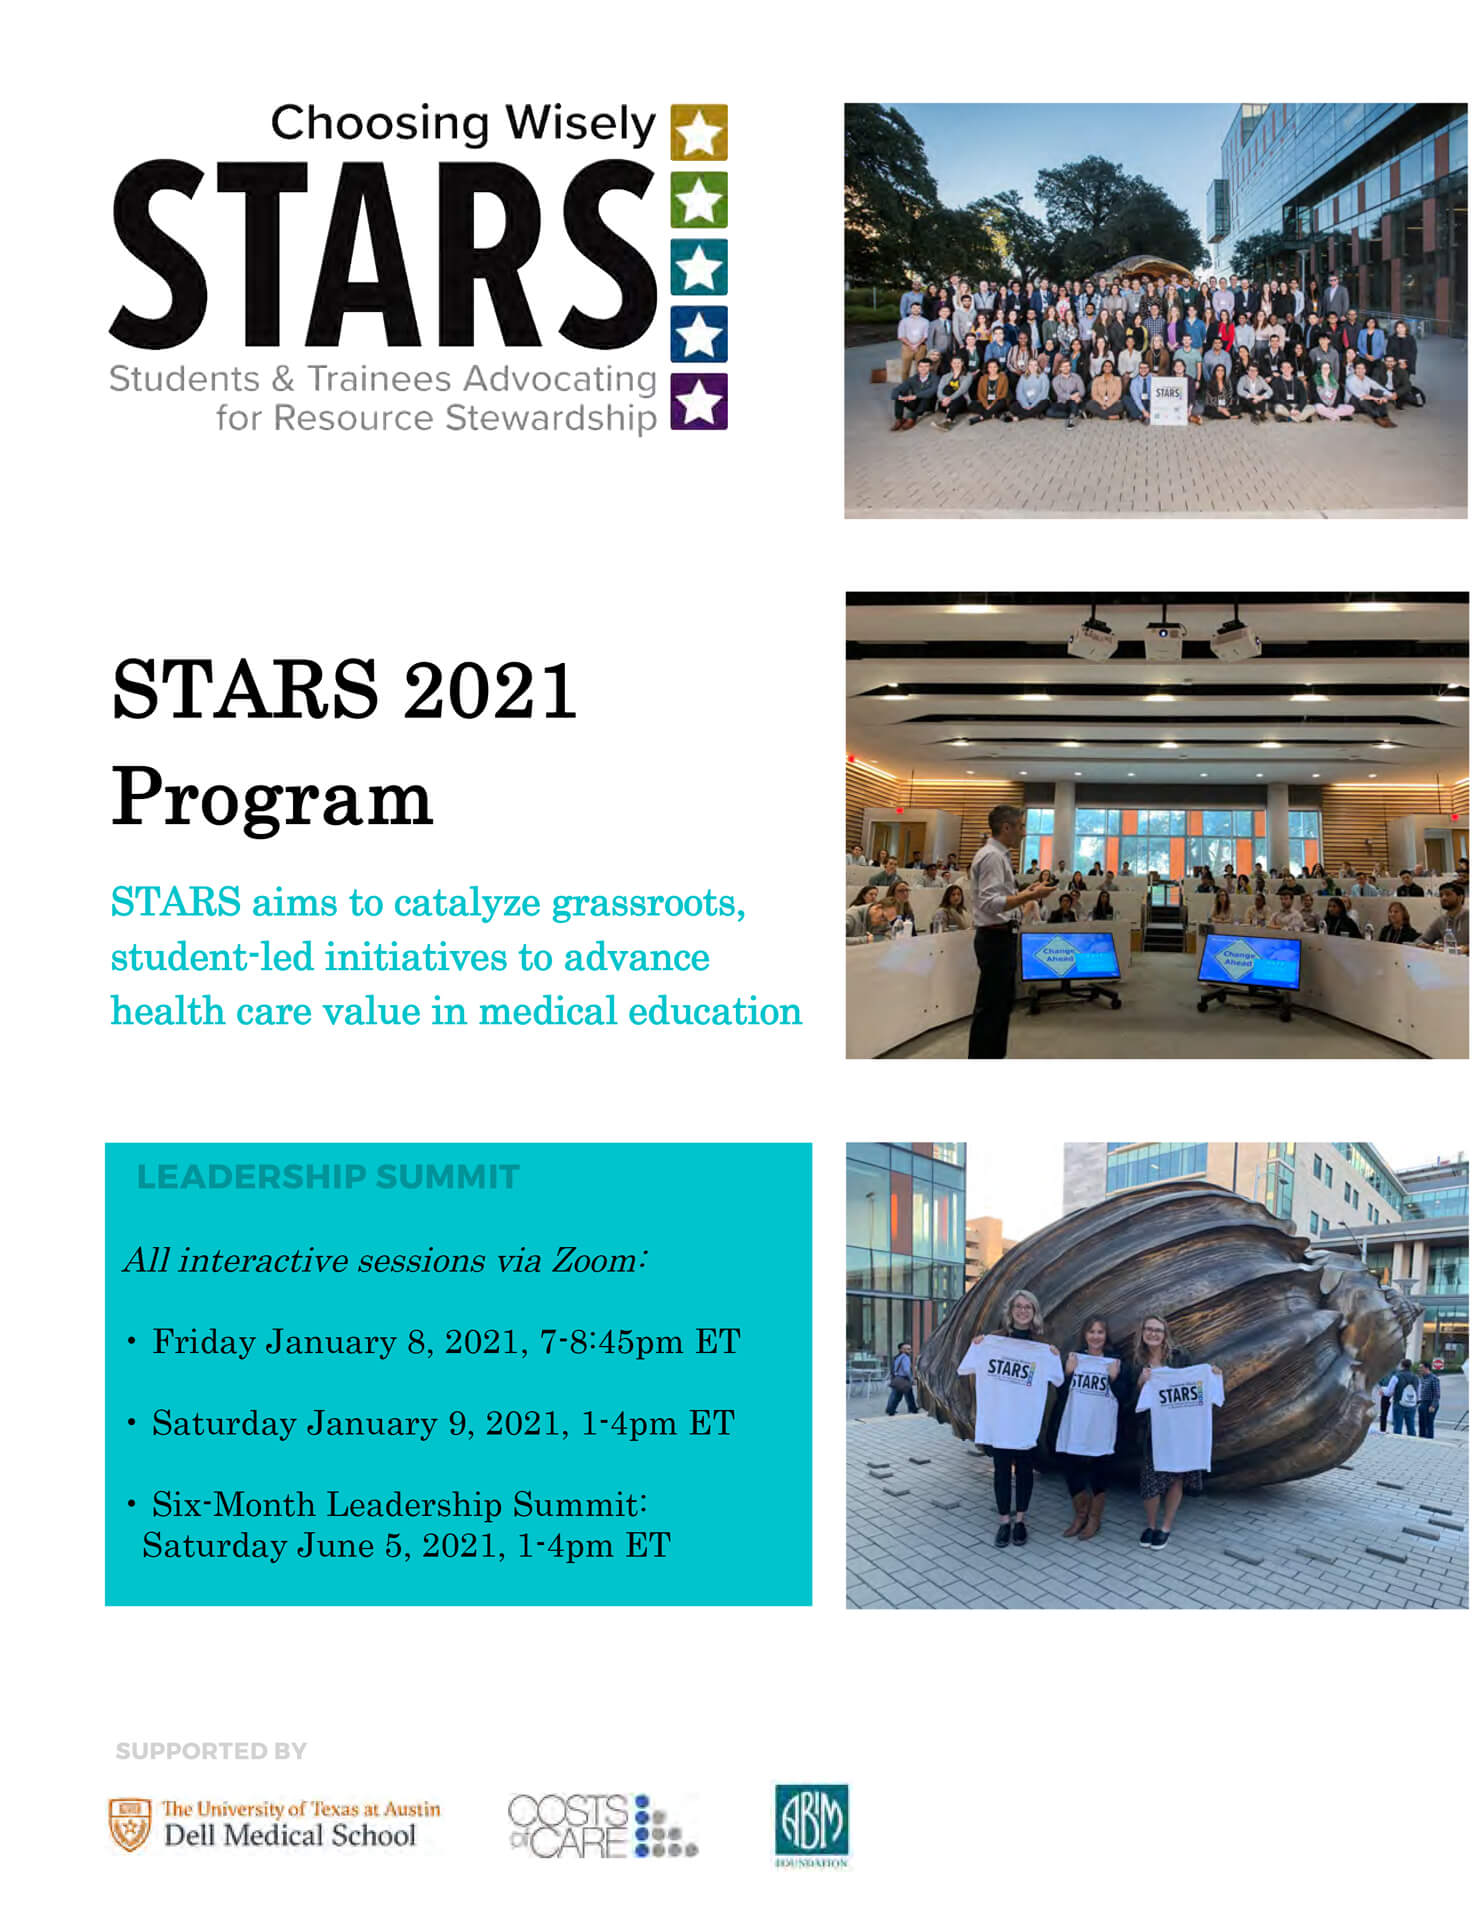 2021 Choosing Wisely Stars Flyer 01